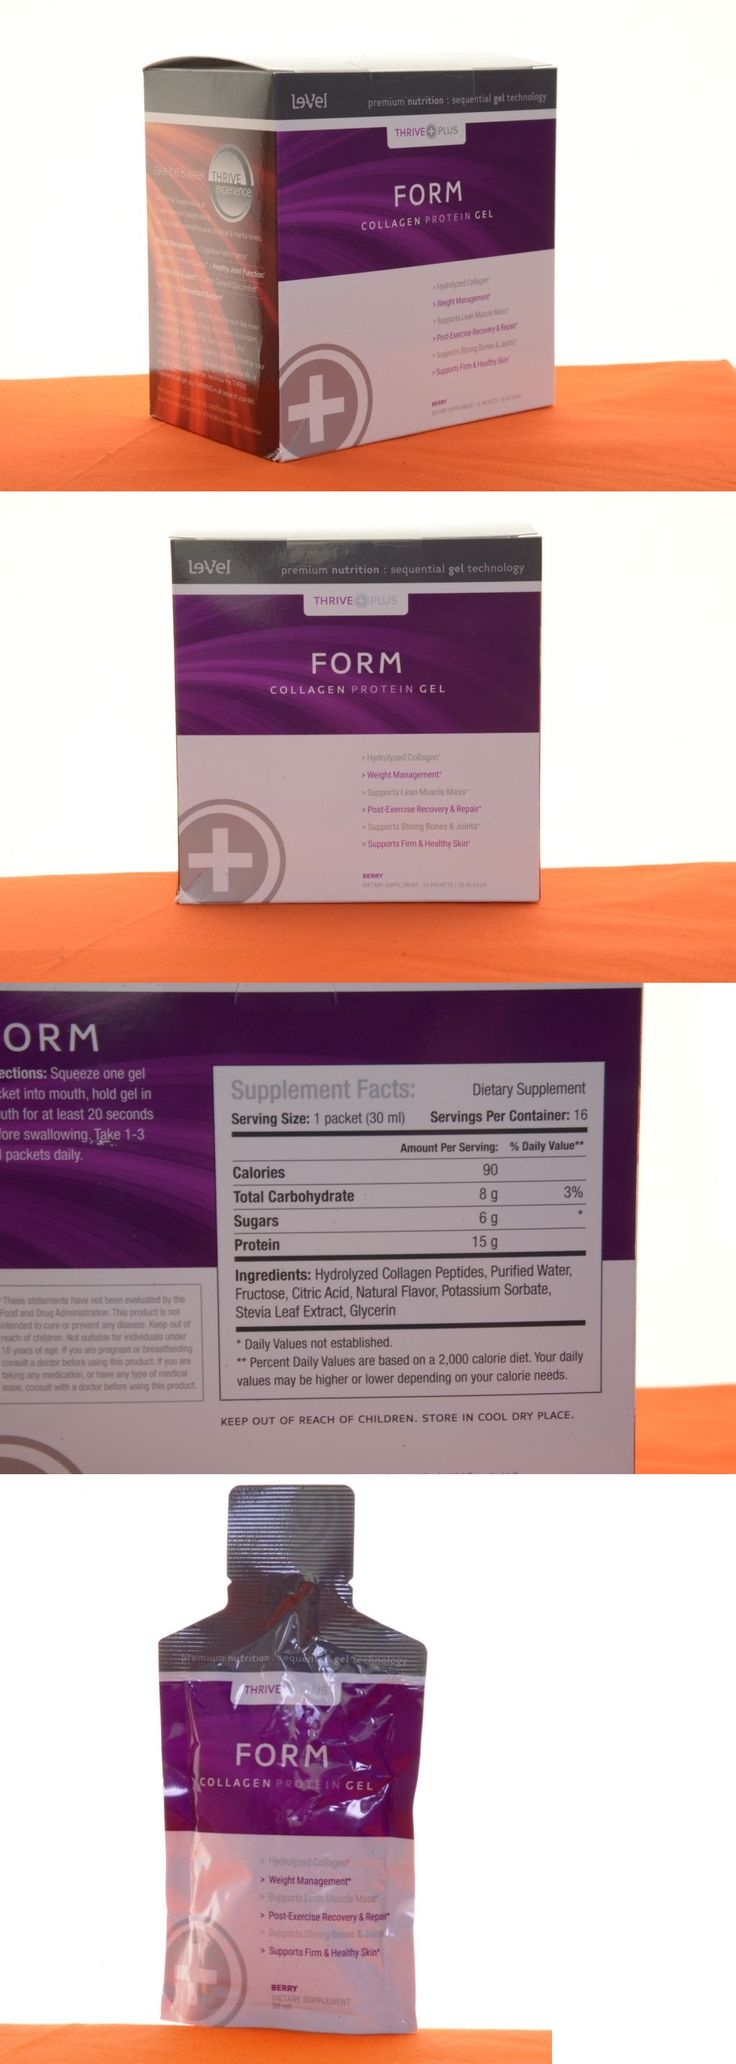 Weight Loss Supplements: Le-Vel Thrive Form Collagen Protein Gel 16 Sealed Packs Very Fresh BUY IT NOW ONLY: $41.97